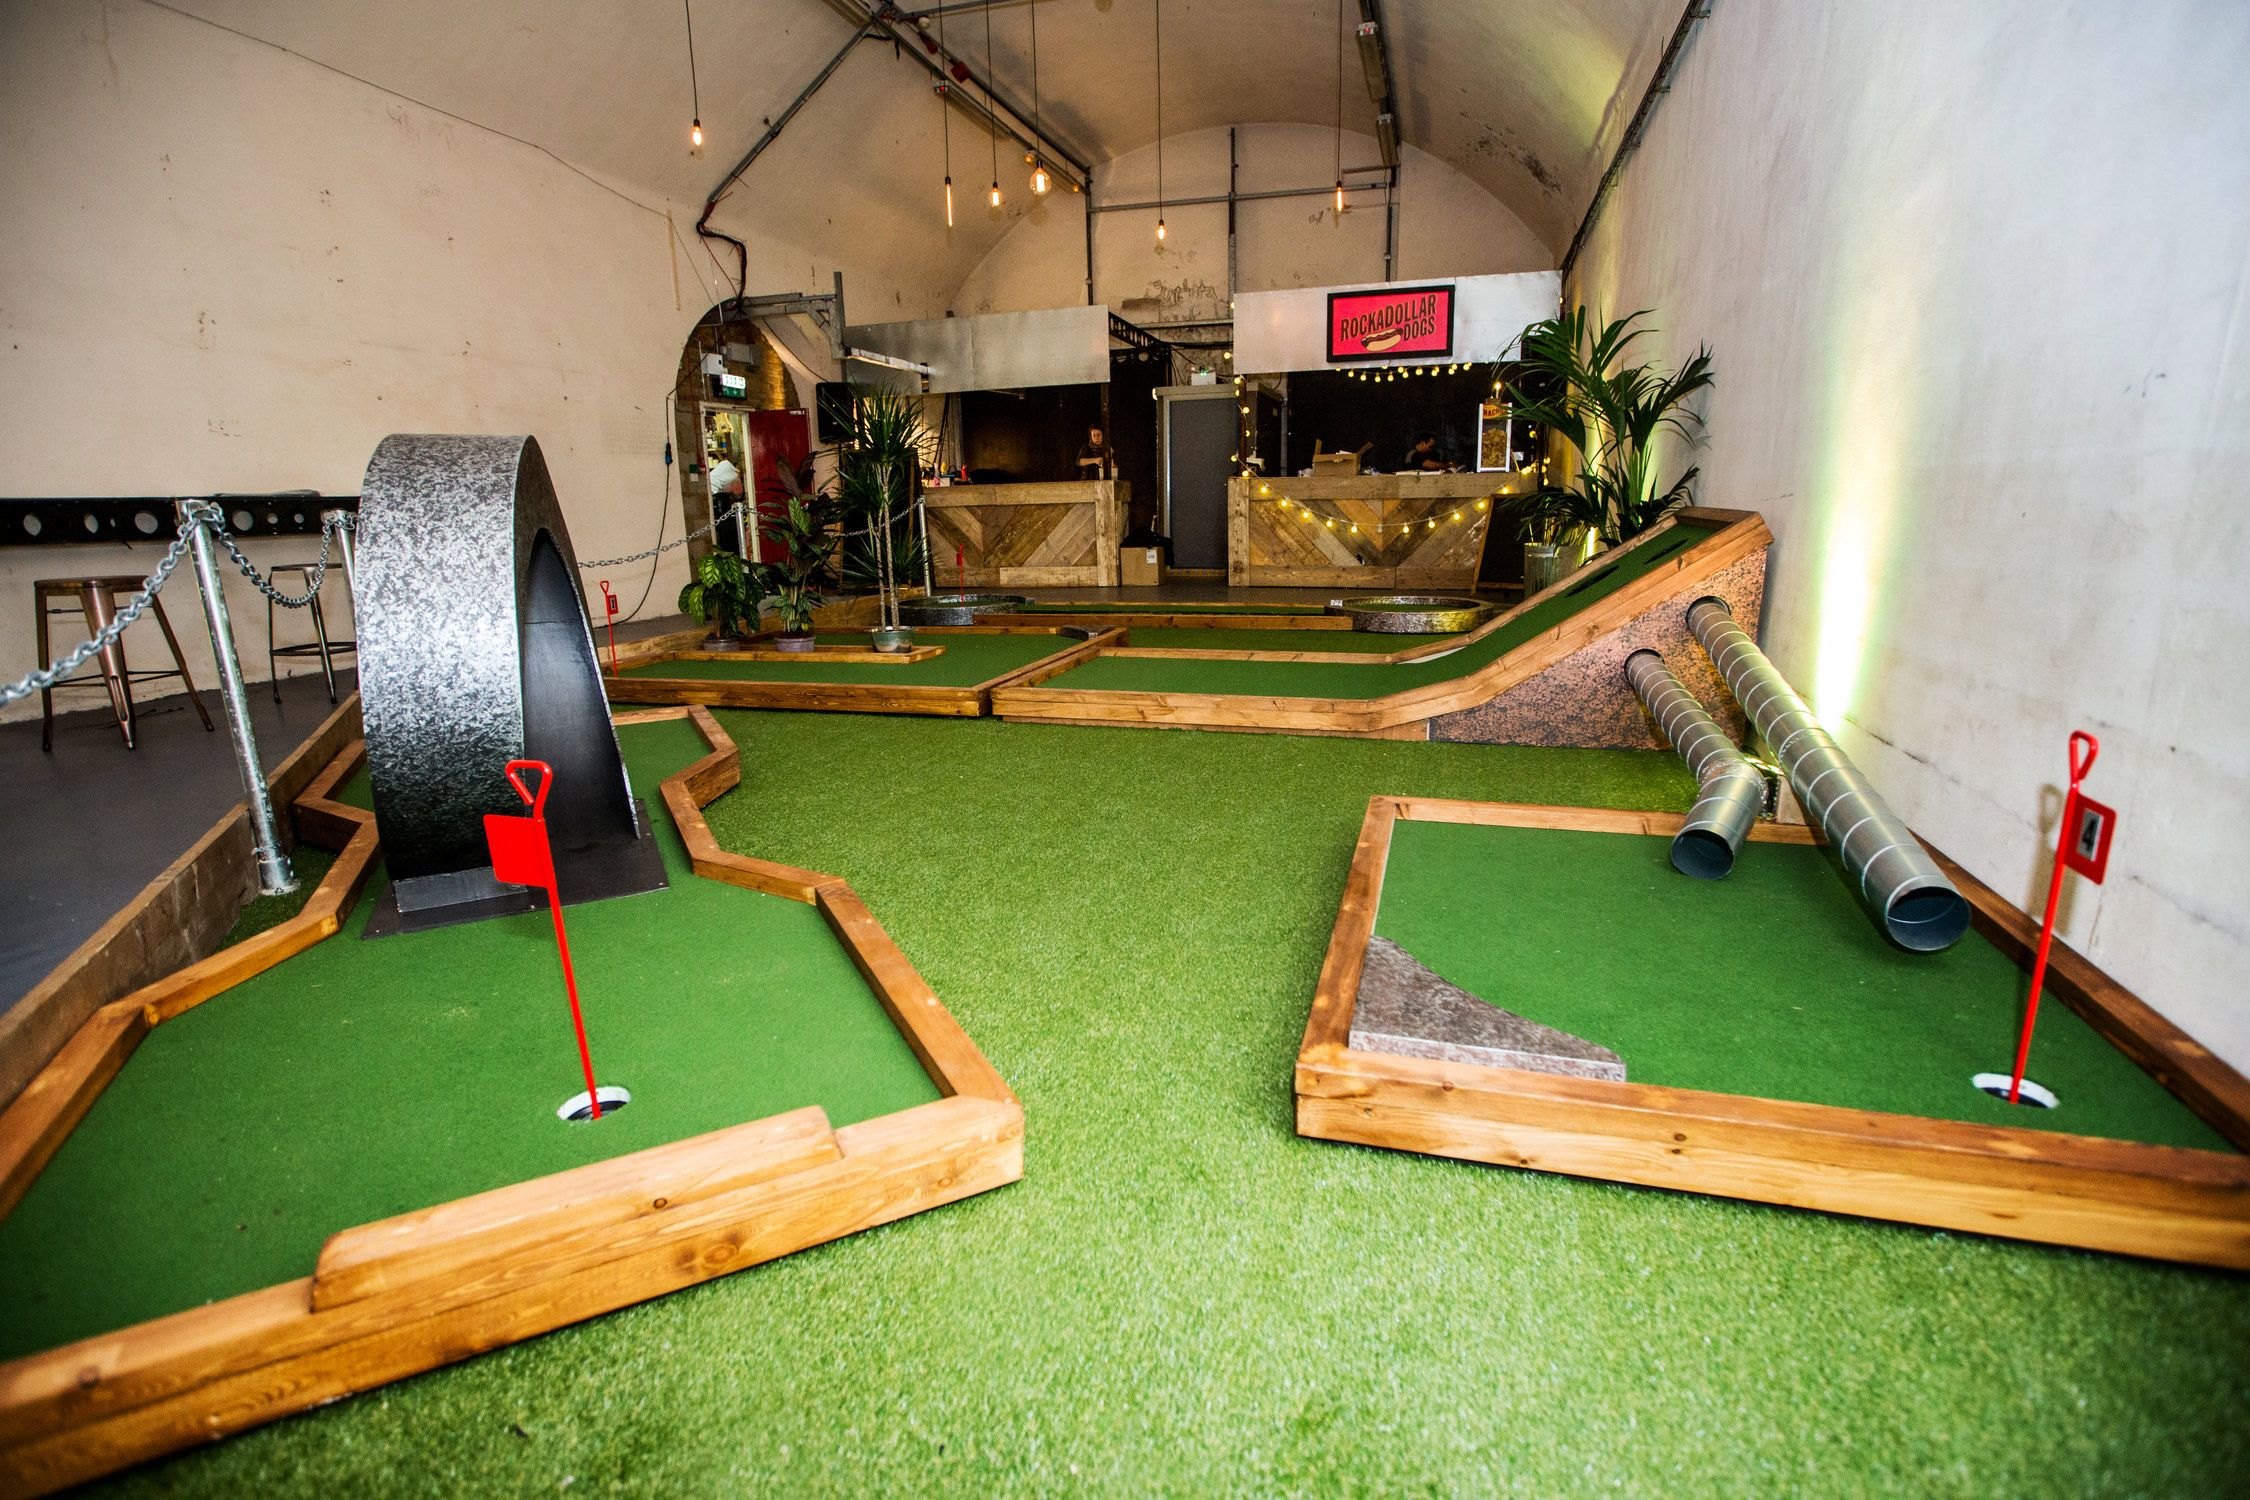 A Few Of The Crazy Golf Course Holes We Designed For